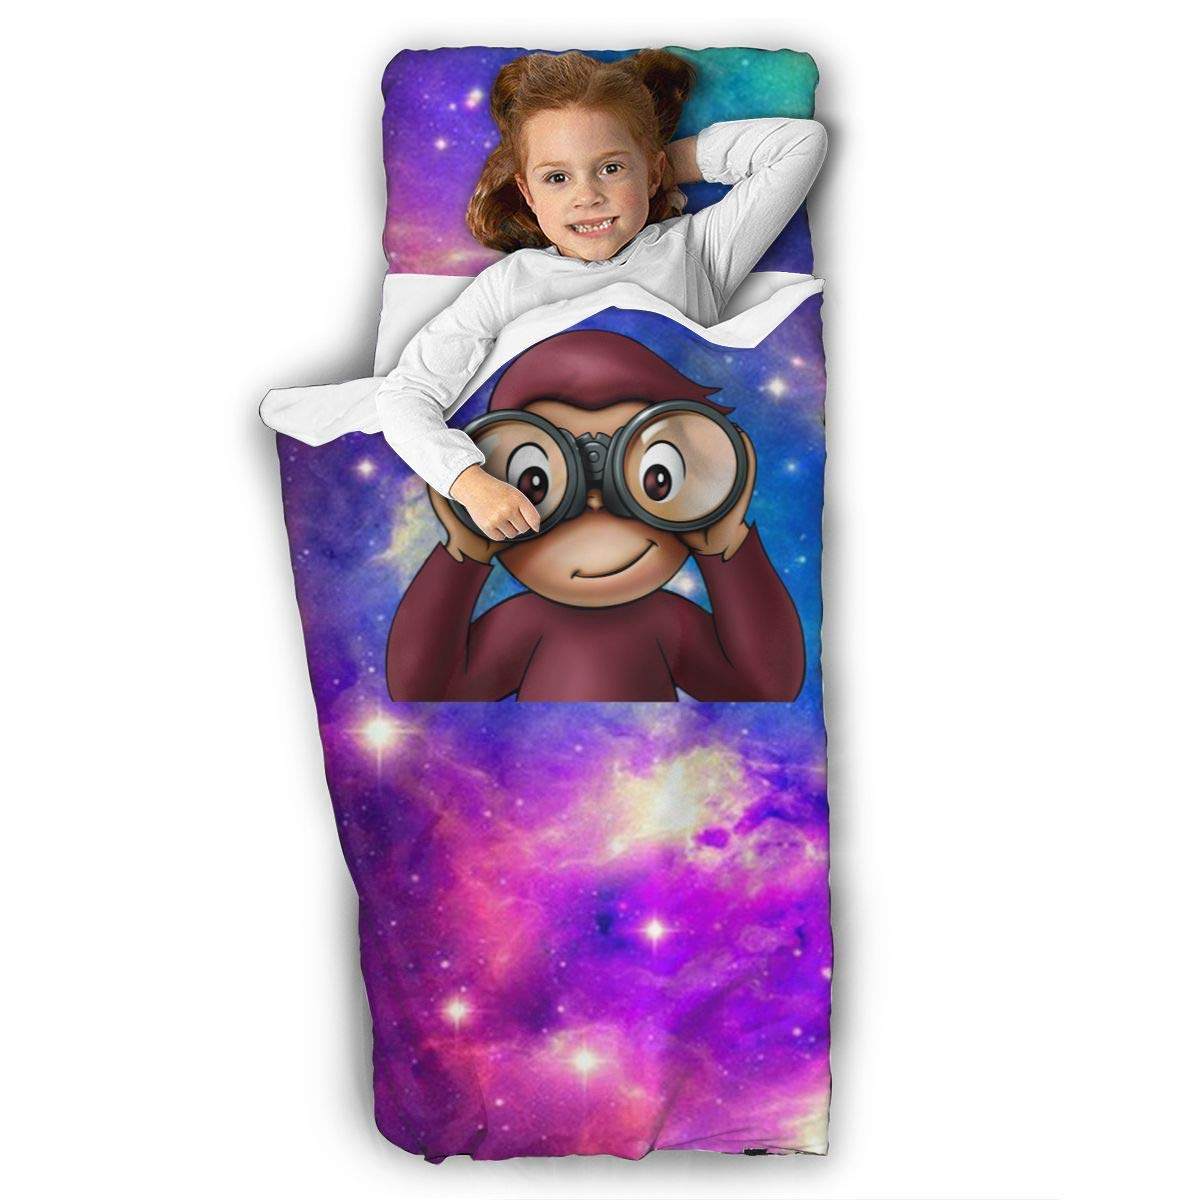 """Beautfe Galaxy Space Star Curi-OUS Ge-orge Unisex Toddler Kid Nap Mat,Children Slumber Bags with Pillow for Preschool, Daycare, Sleepover Sets-50"""" X 20"""""""